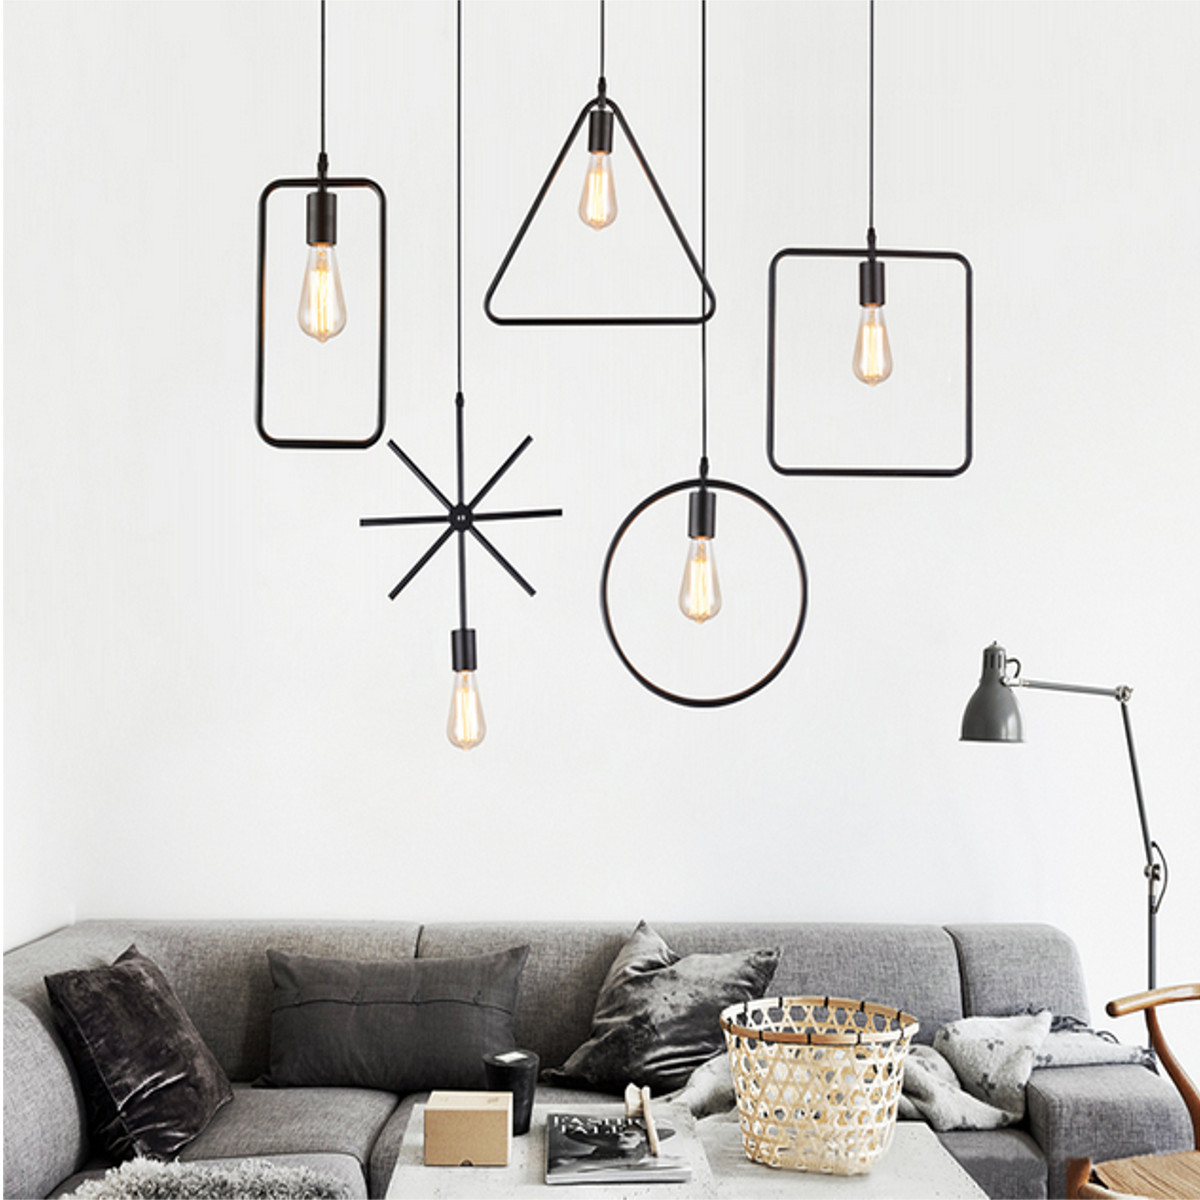 E27 Geometric Hanging Light Industrial Ceiling Pendant Lamp Lampshade Fixture